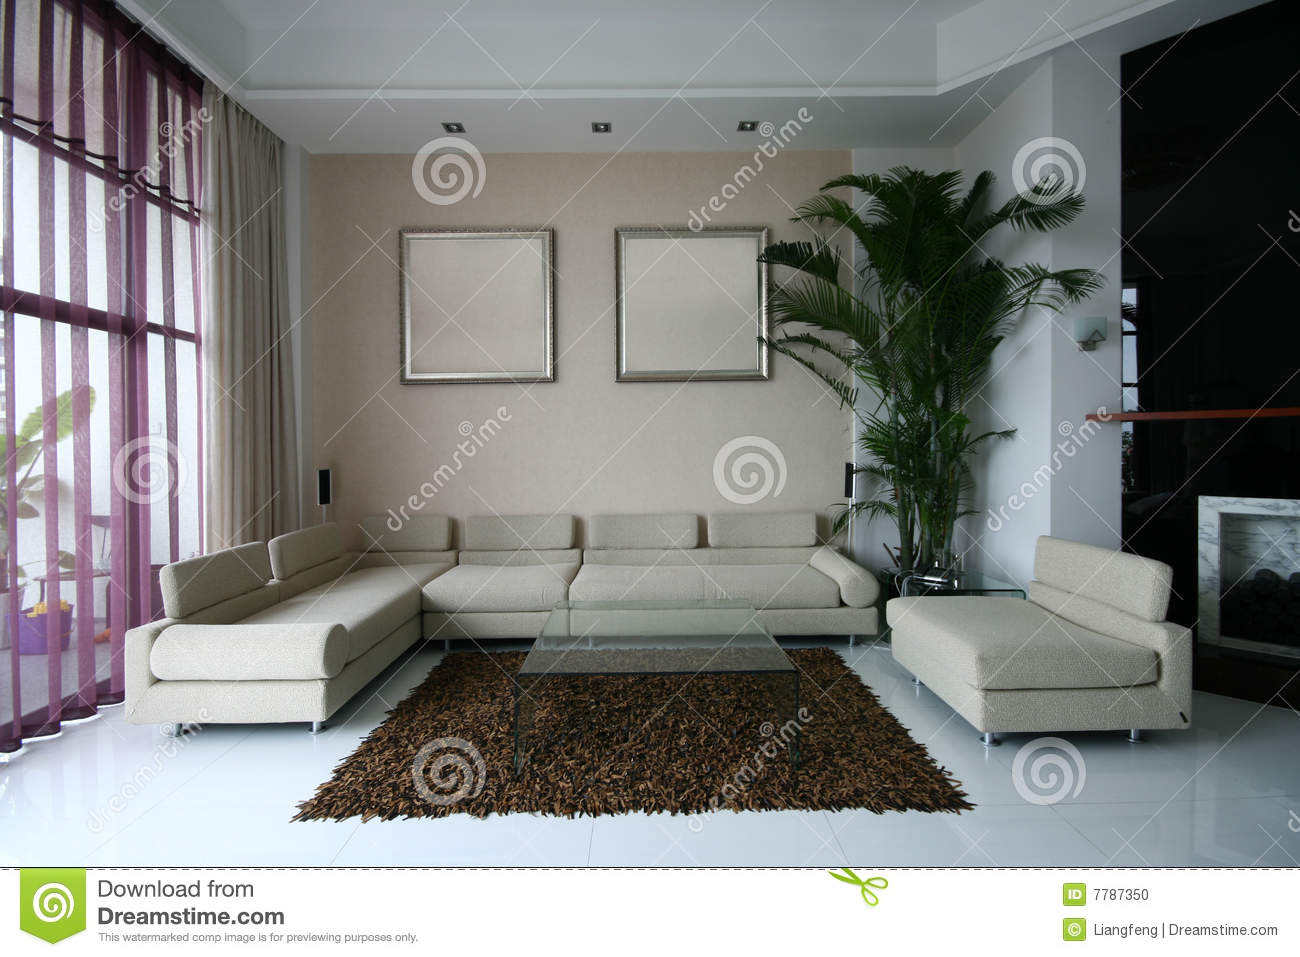 Good room decoration stock photo image of furniture for Good decoration